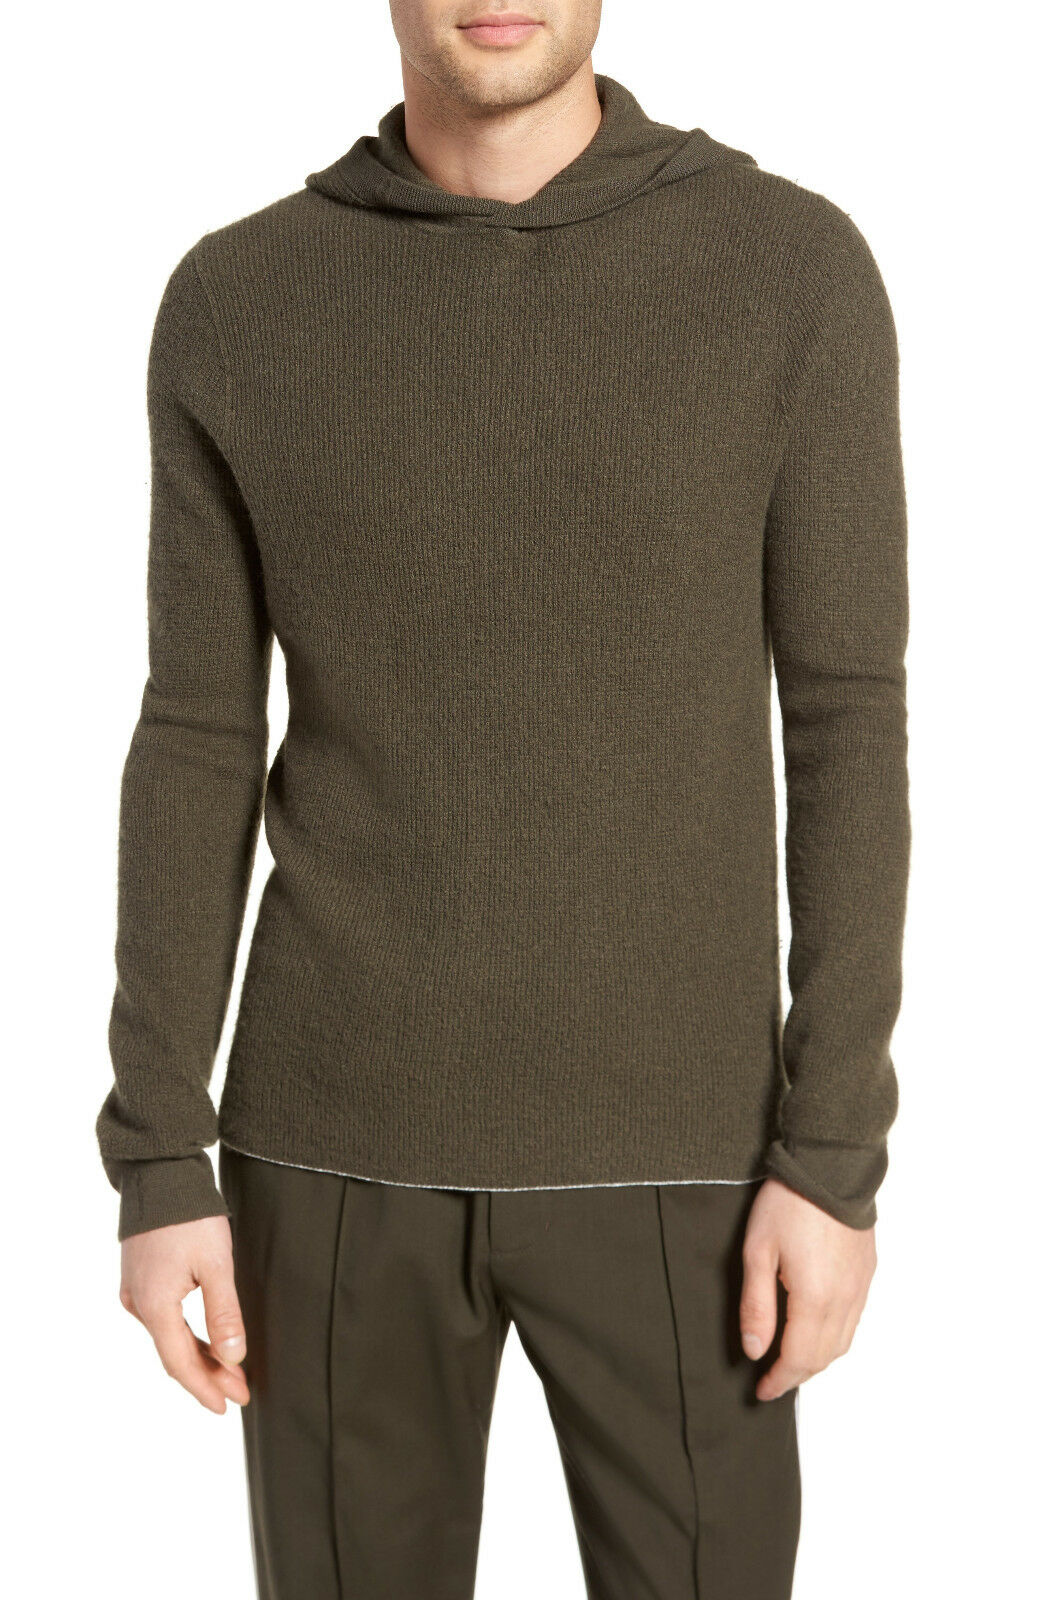 VME308 NWT VINCE 100% CASHMERE WAFFLE PULLOVER MEN HOODIE SWEATER SIZE S 395